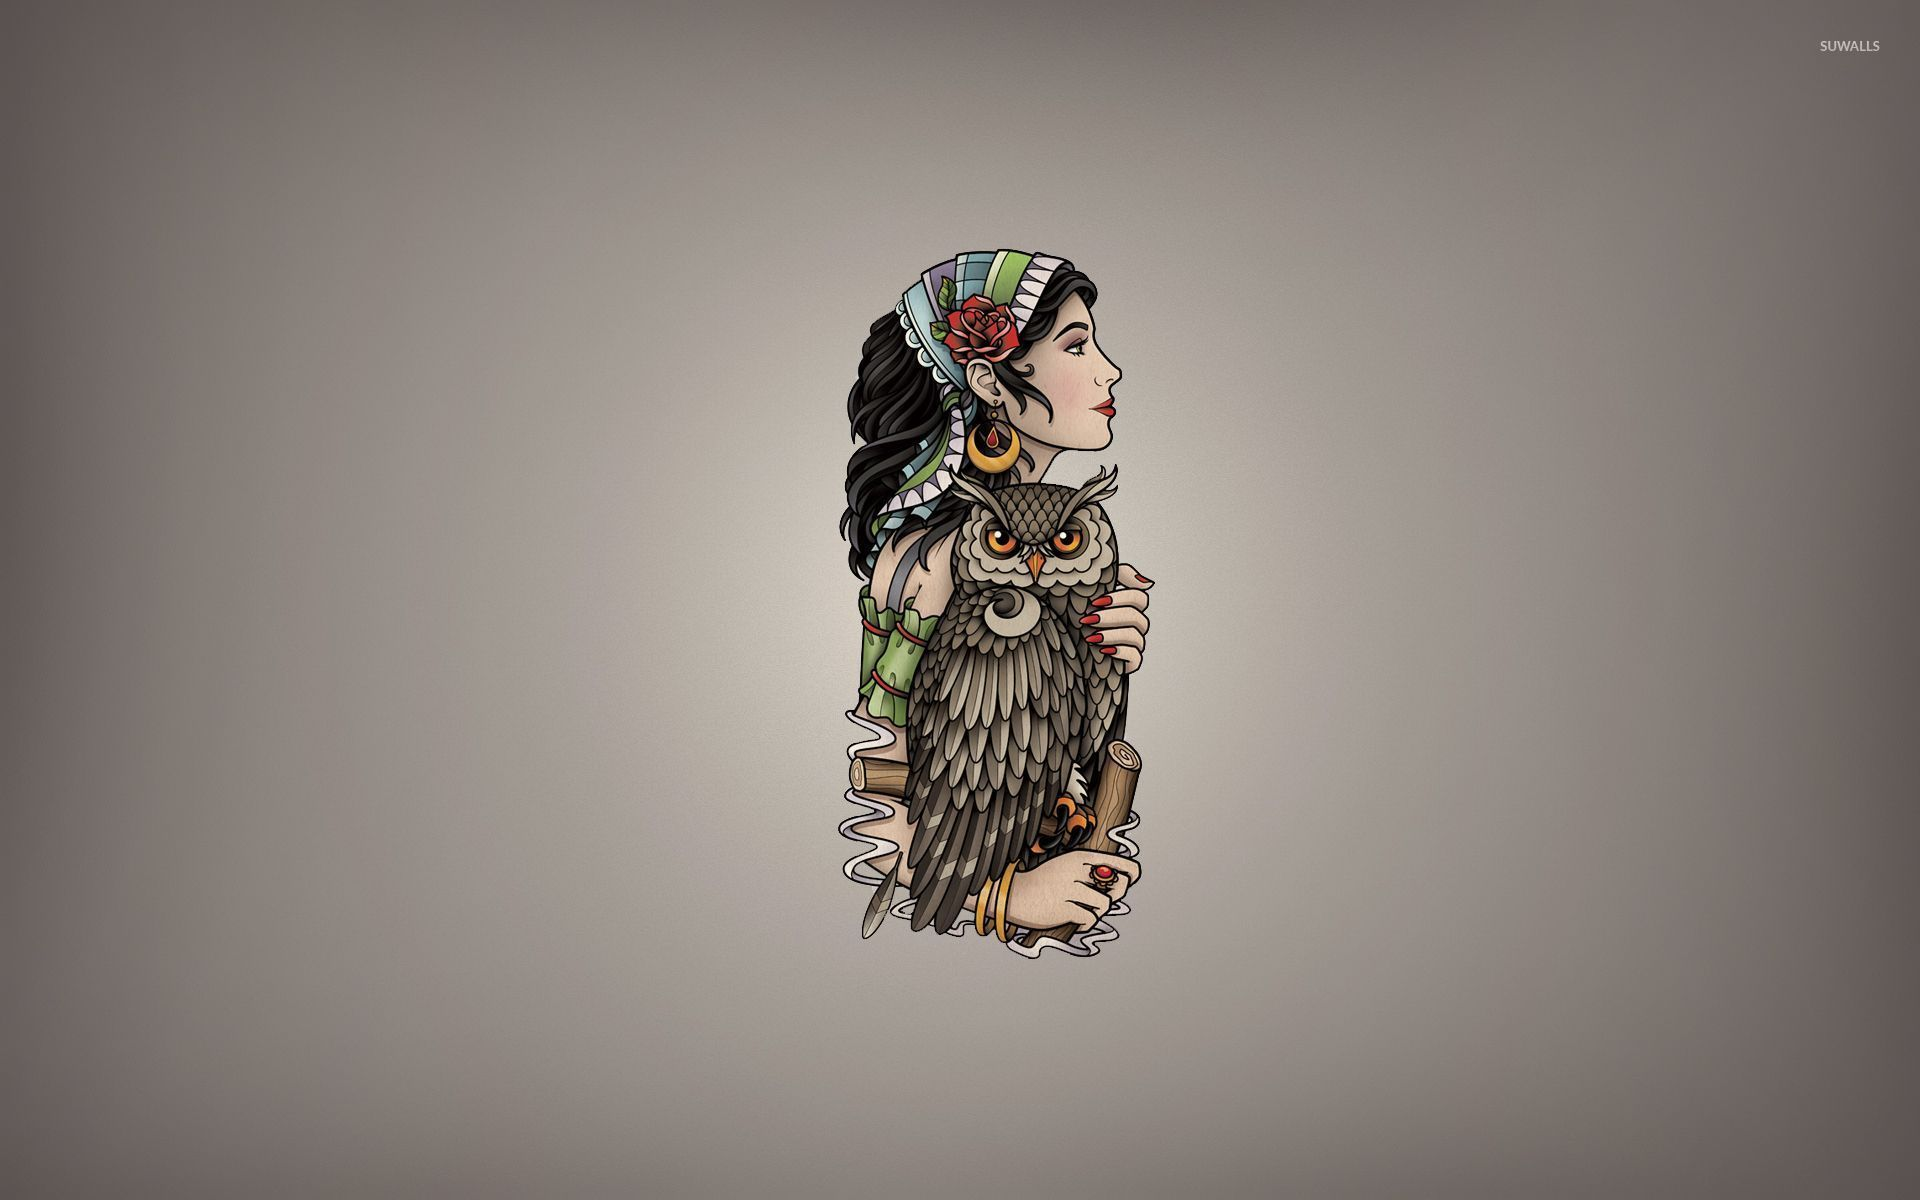 Girl with a scarf holding the owl wallpaper Vector wallpapers